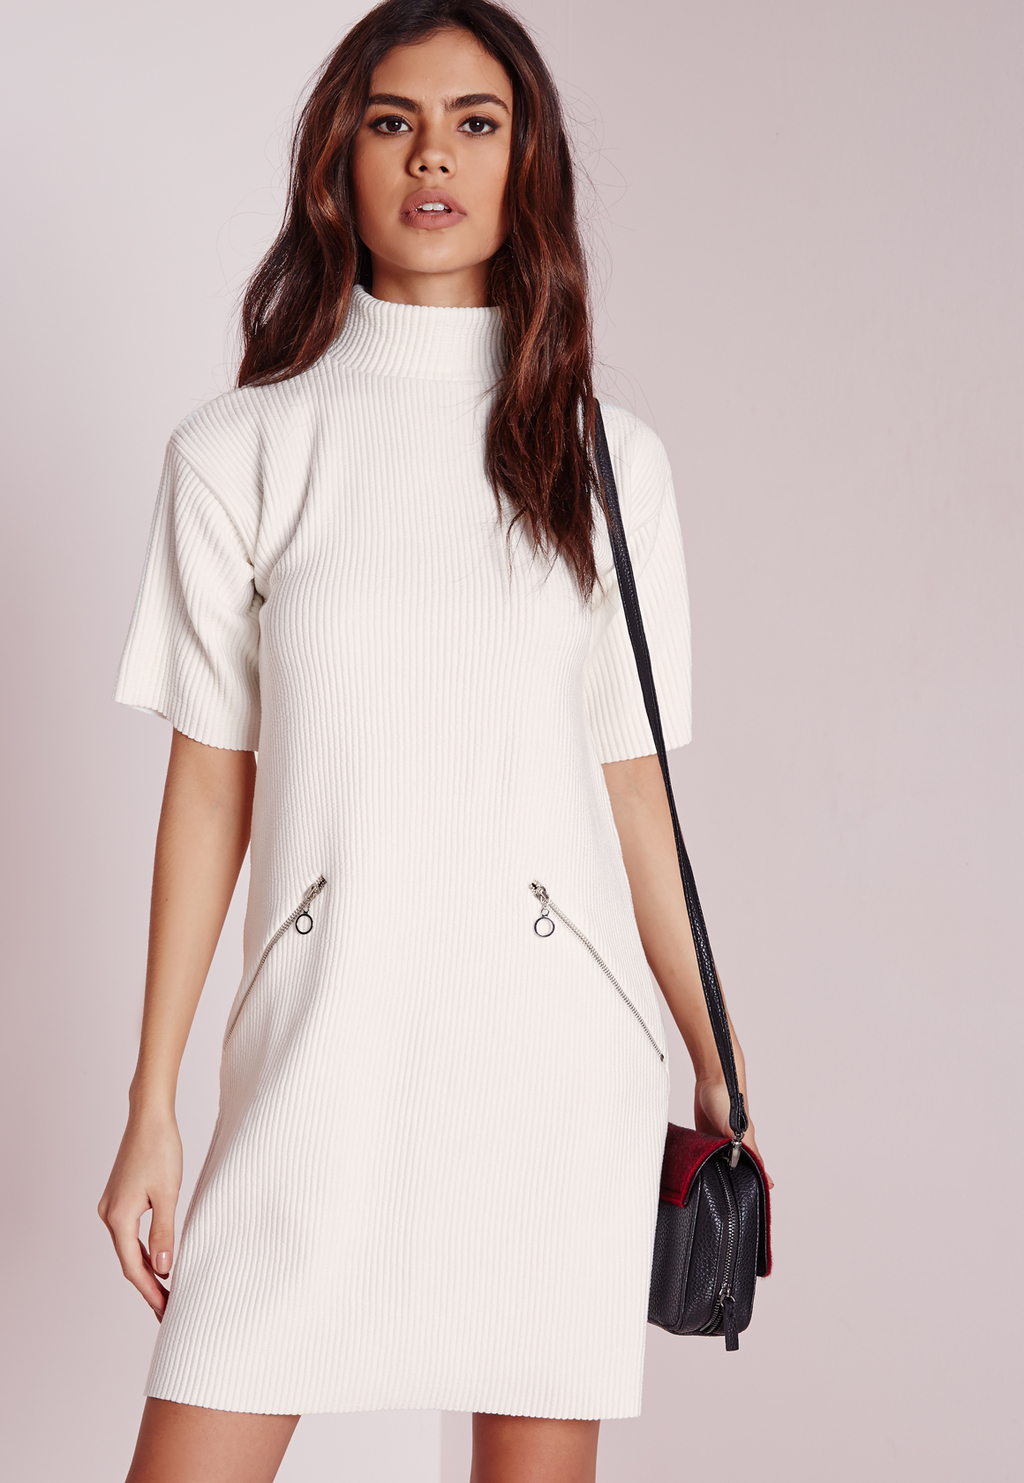 Short Sleeve High Neck Rib Shift Dress White, Ivory - style: shift; length: mid thigh; pattern: plain; neckline: high neck; predominant colour: ivory/cream; occasions: evening; fit: body skimming; fibres: polyester/polyamide - 100%; hip detail: subtle/flattering hip detail; sleeve length: short sleeve; sleeve style: standard; pattern type: fabric; texture group: other - light to midweight; embellishment: zips; season: s/s 2016; wardrobe: event